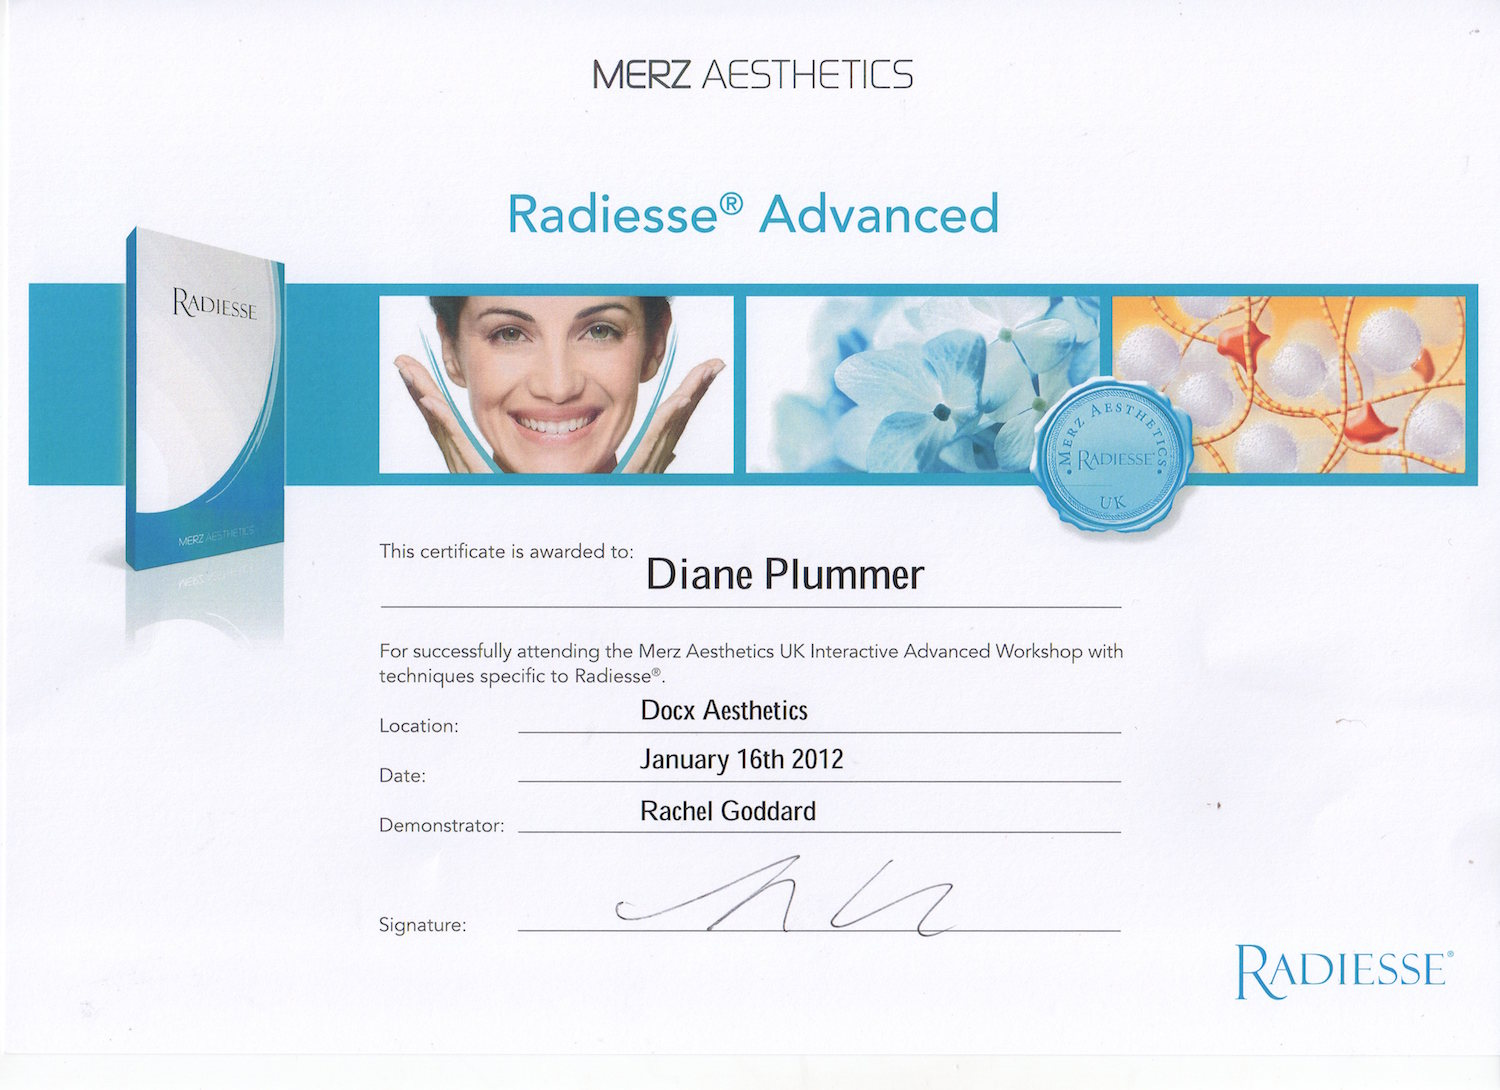 Radiesse Advanced Dermal Fillers certification awarded to Diane Plummer - Revive Aesthetics